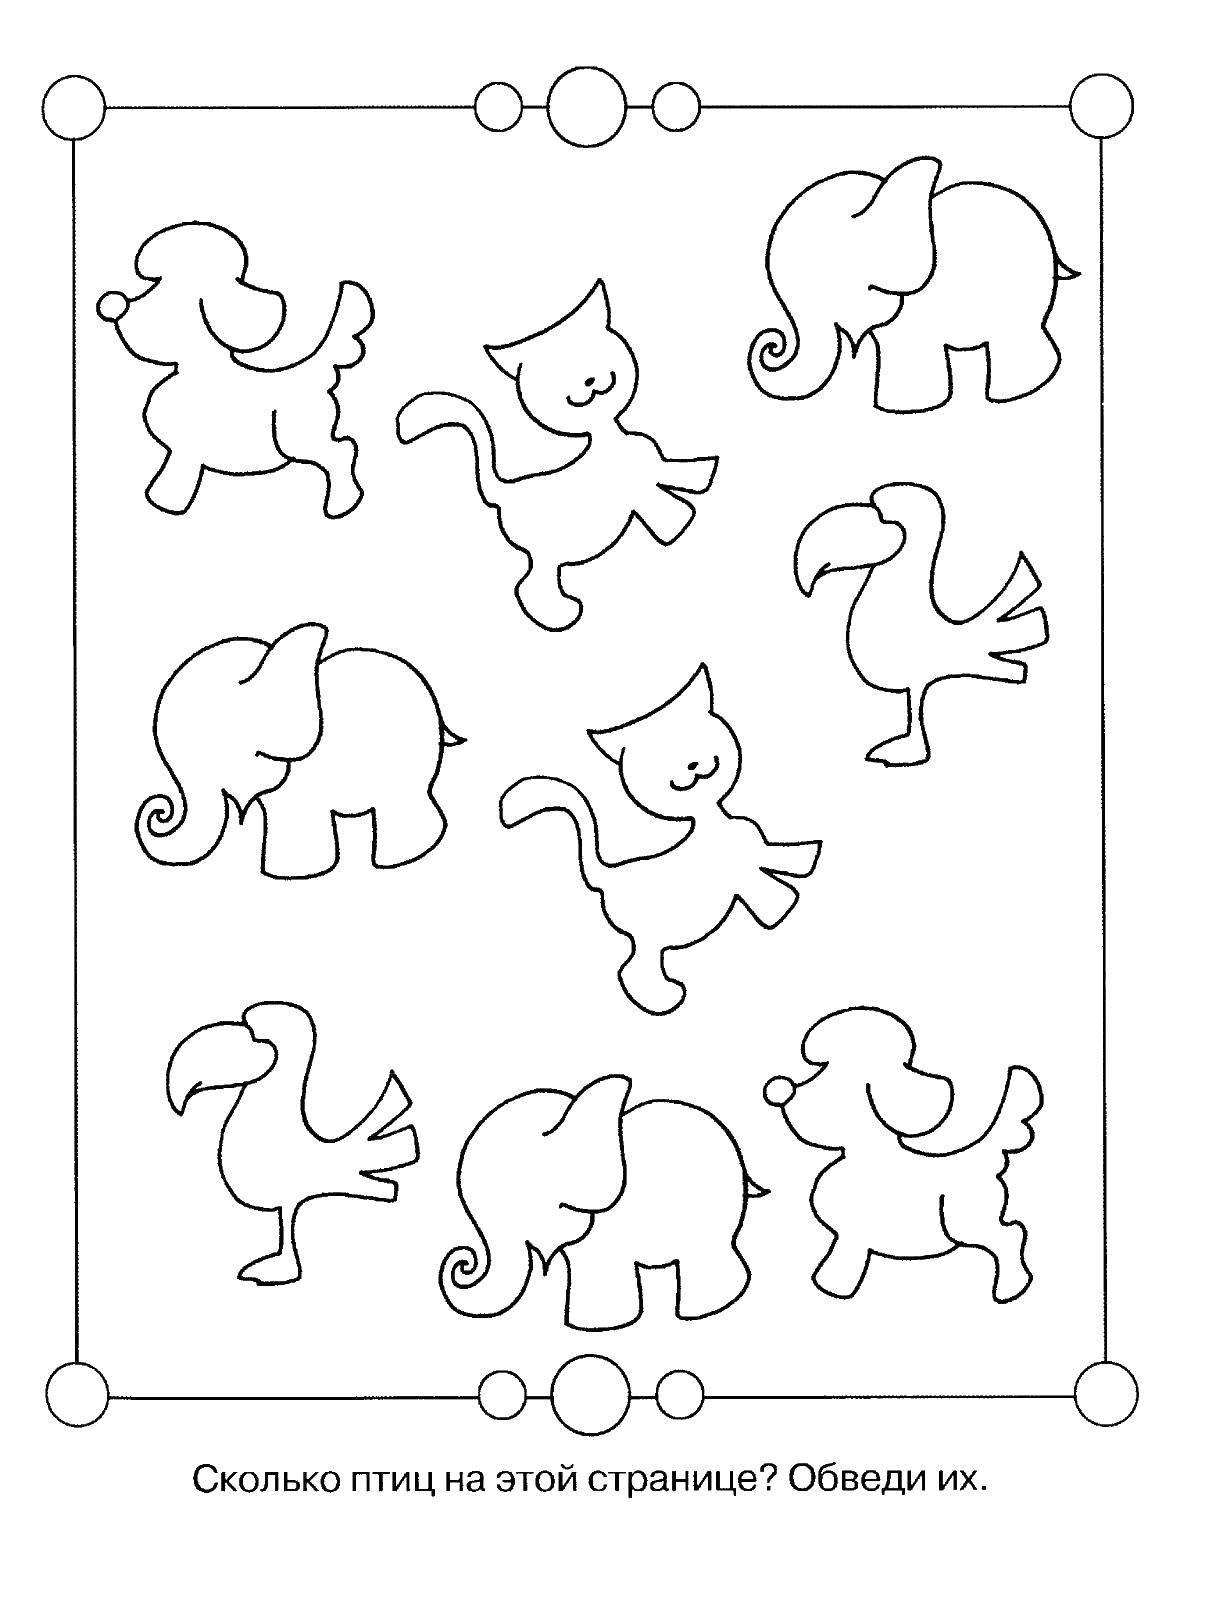 Coloring sheet thinking Download machine .  Print ,The contours of the machine,